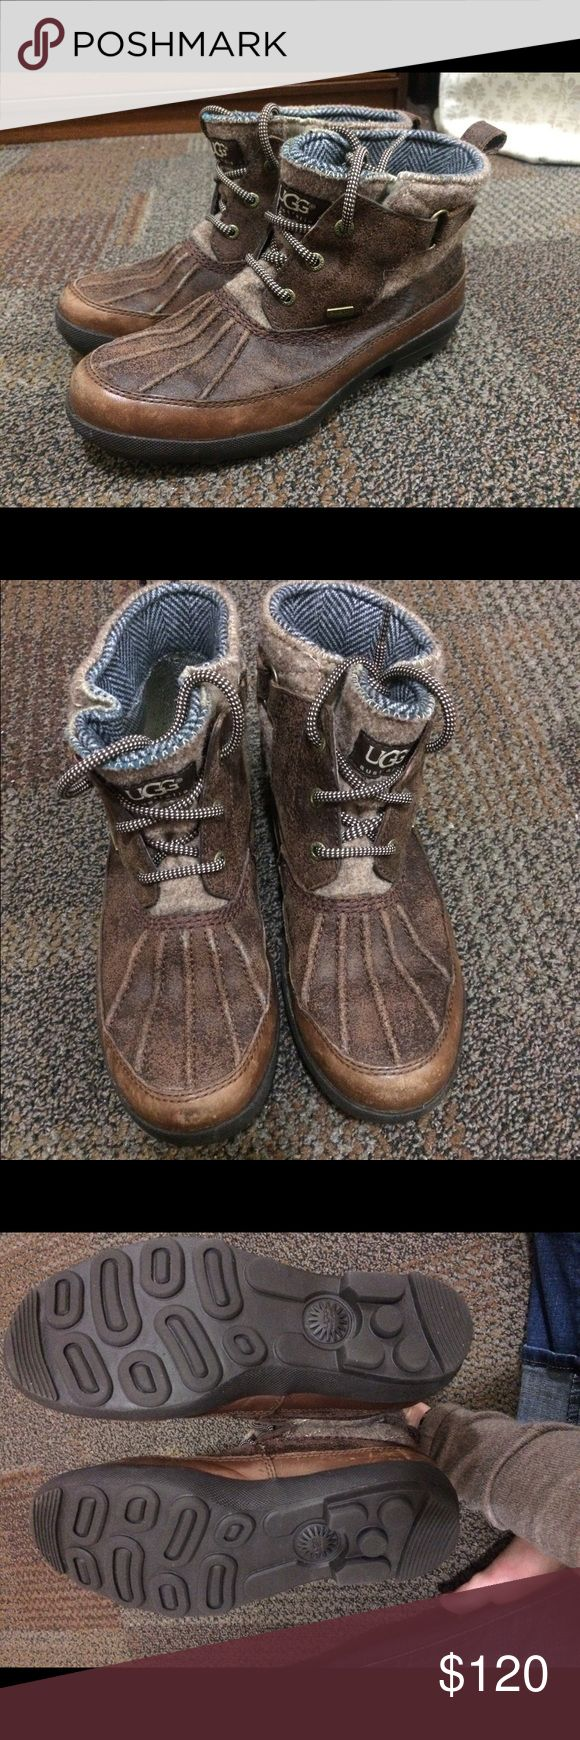 Ugg boots! Bean boot style Ugg boots. Hardly worn, still look brand new. Extremely warm and stylish. Price negotiable UGG Shoes Winter & Rain Boots